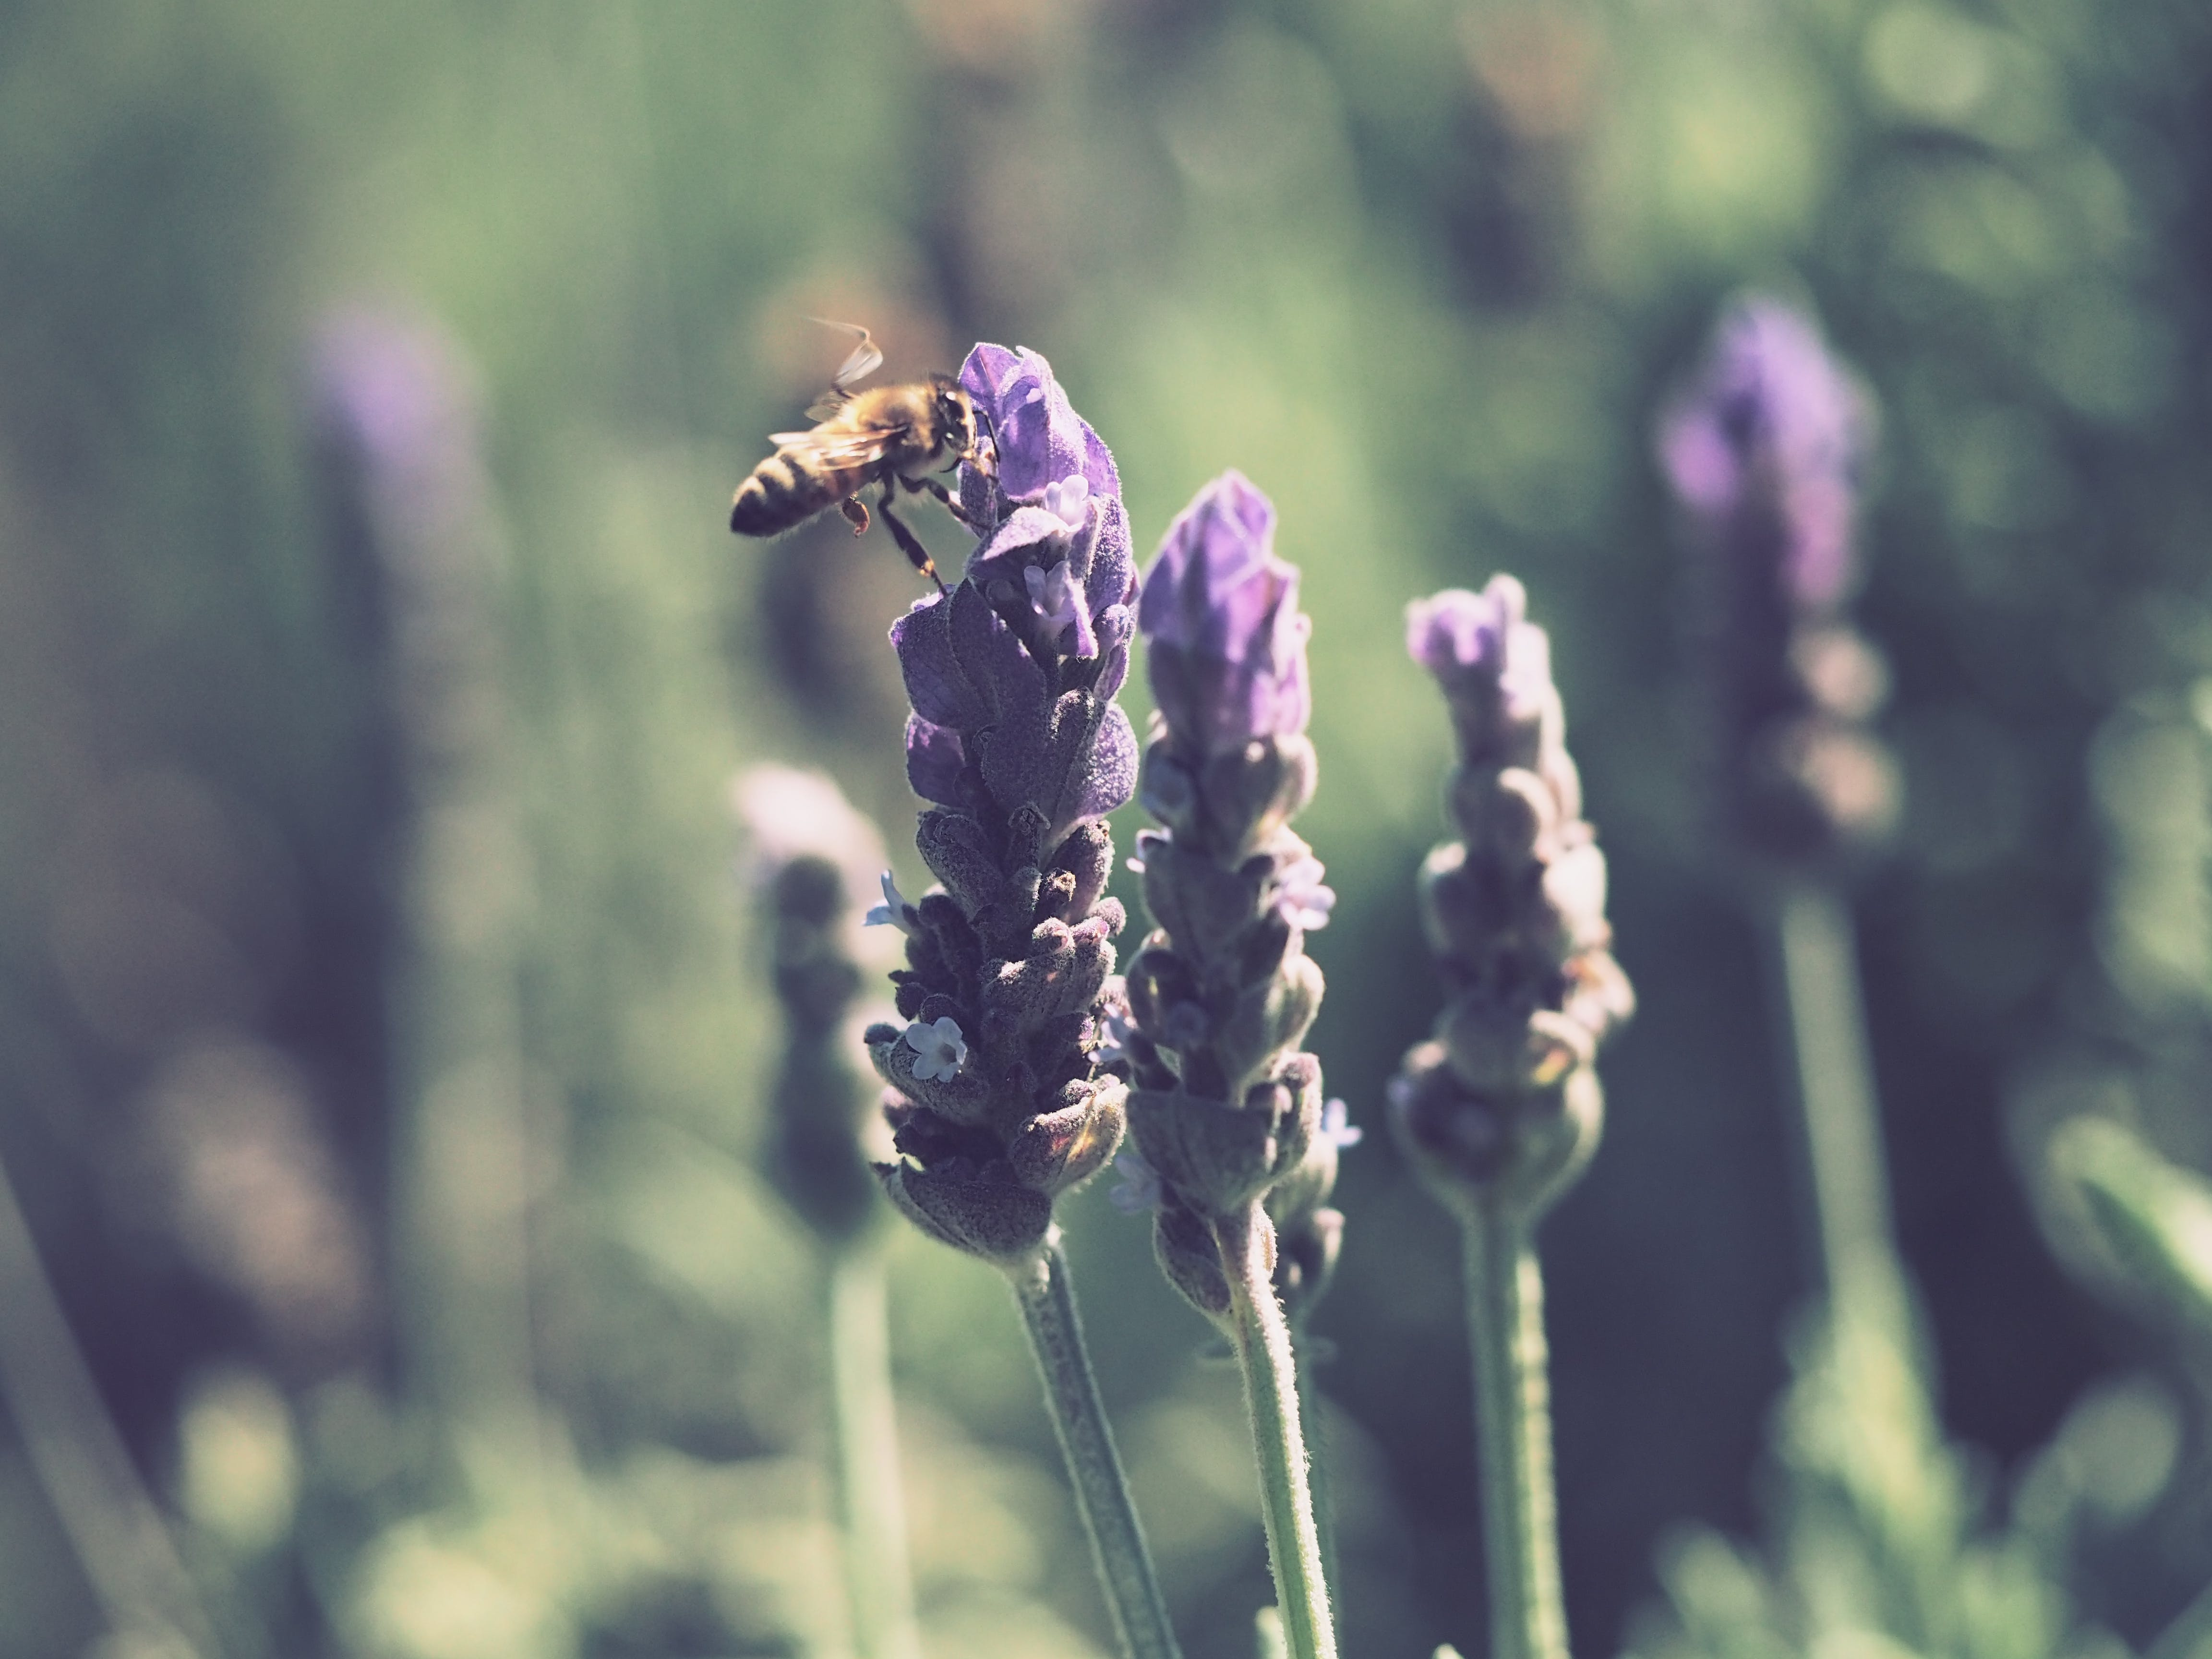 Yellow and Black Honey Bee on Purple Lavender Flower